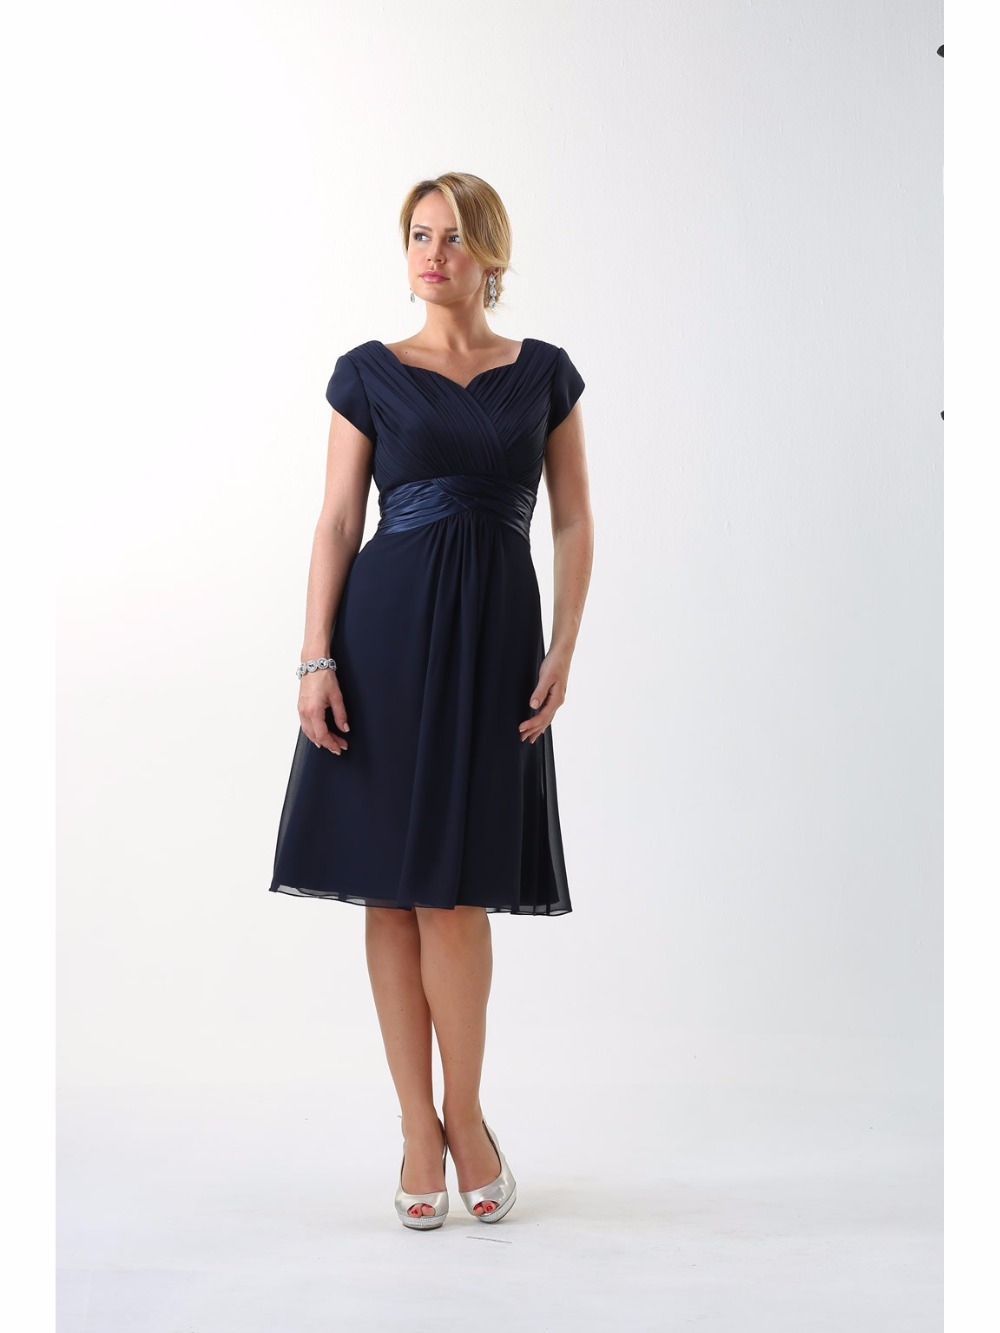 Navy Blue Short Modest   Bridesmaid     Dresses   With Cap Sleeves Sweetheart Navy Blue Informal Beach Summer Maids of Honor Gowns New